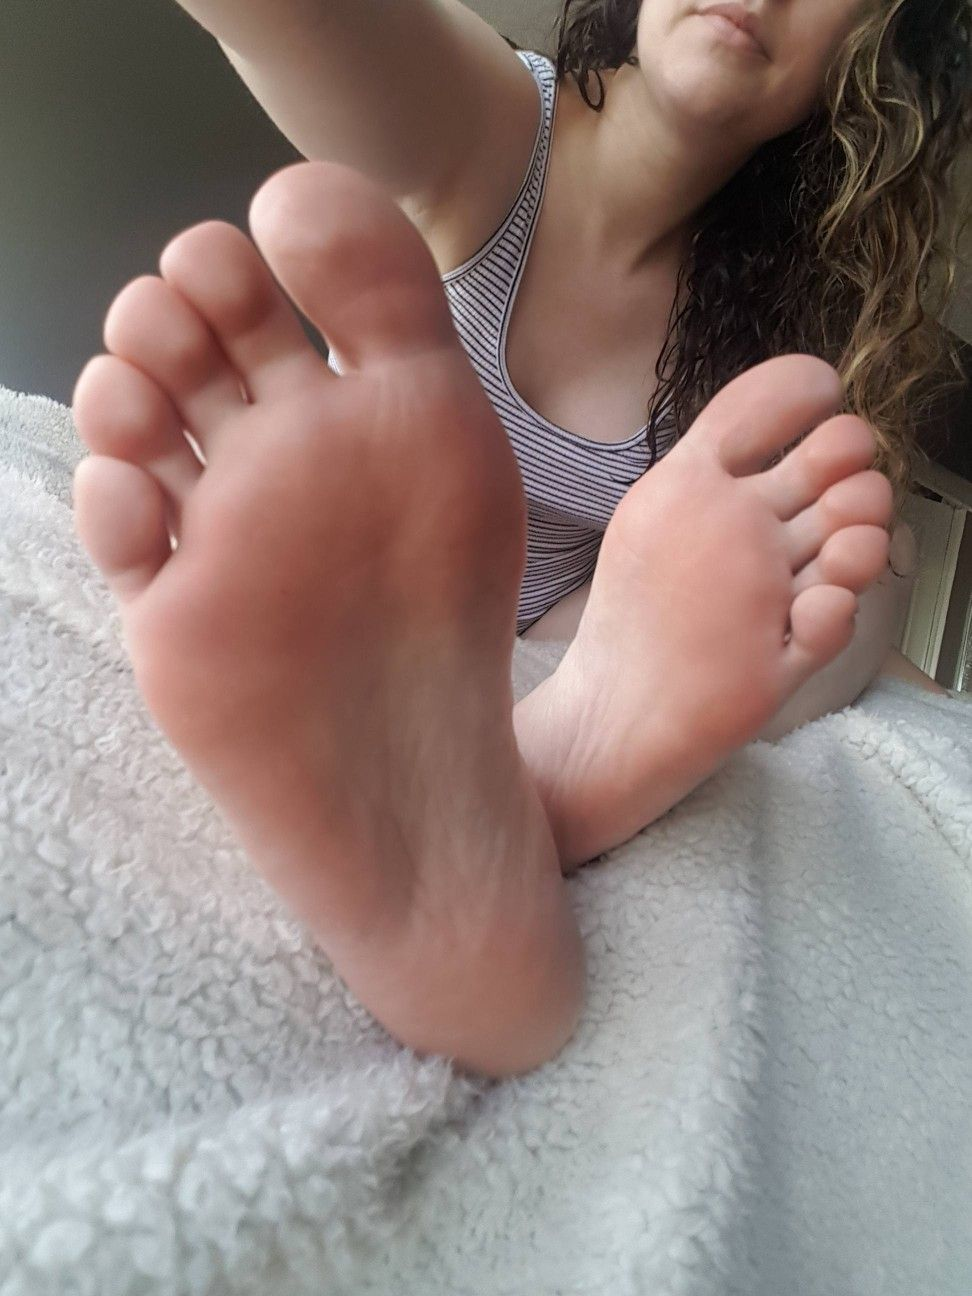 Foot girl picture